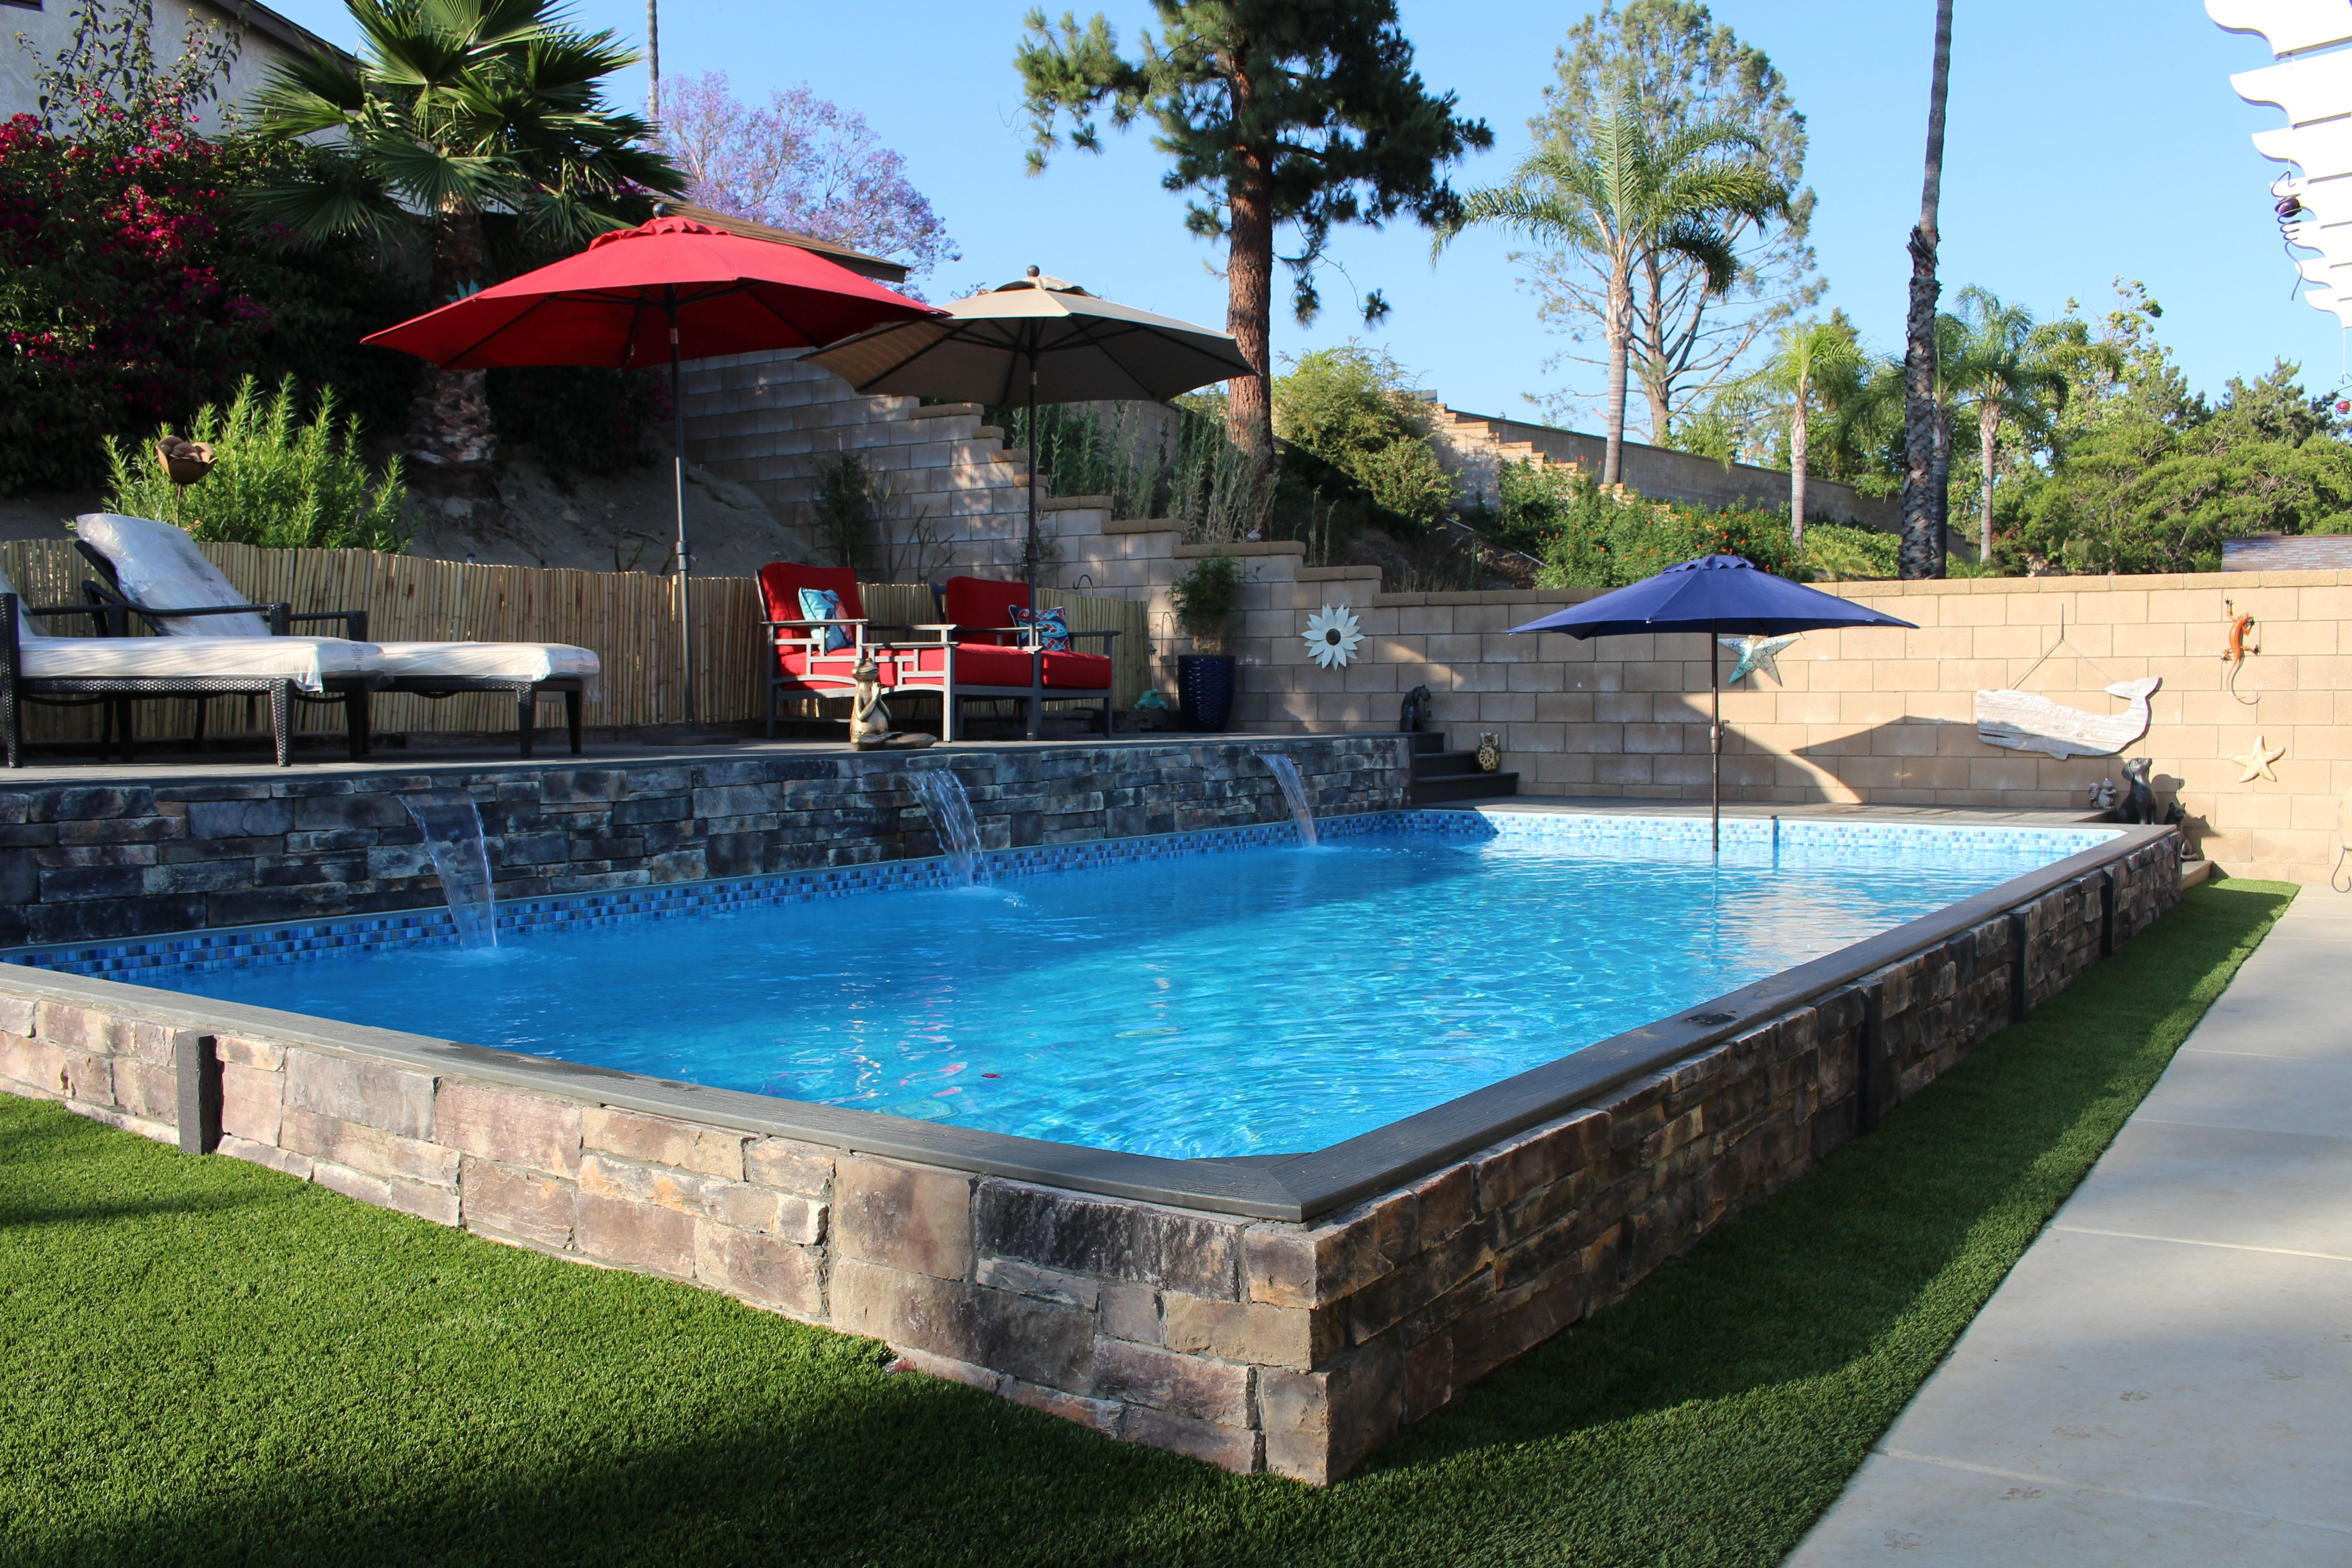 Vacation At Home With An Affordable Islander Inground Pool In 2020 Small Backyard Pools Affordable Inground Pools Swimming Pools Backyard